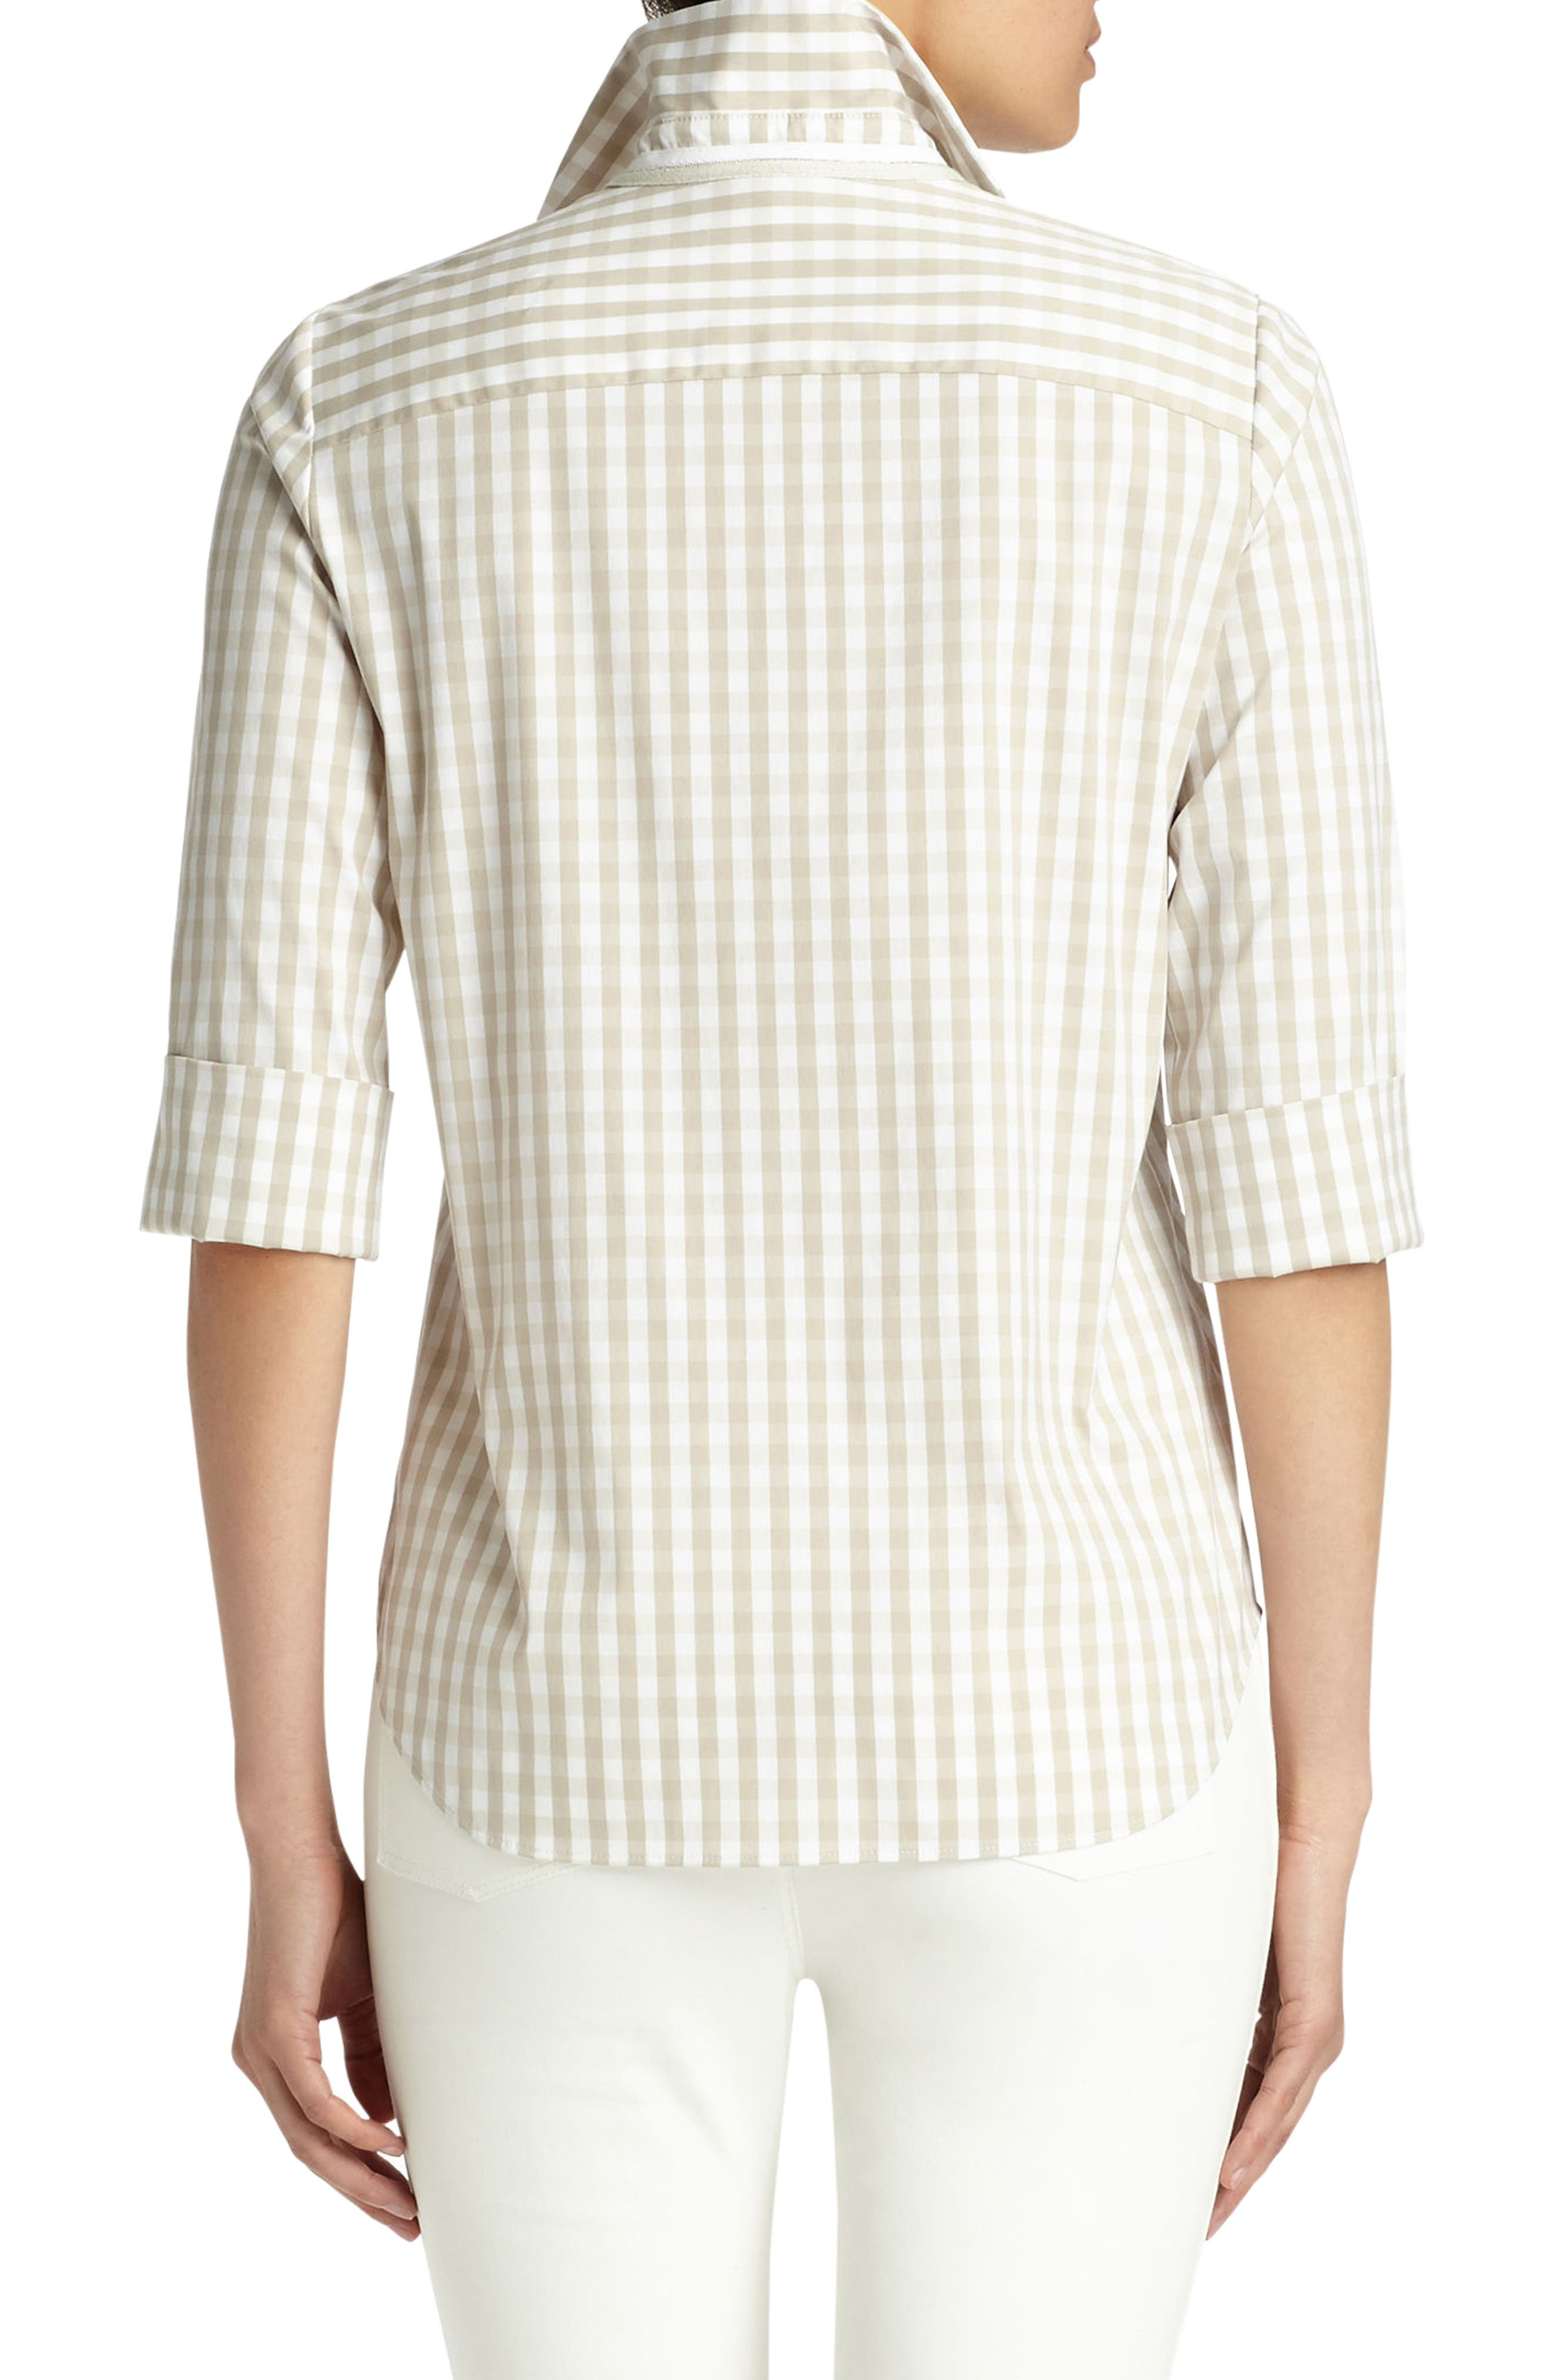 Paget Gingham Blouse,                             Alternate thumbnail 2, color,                             200